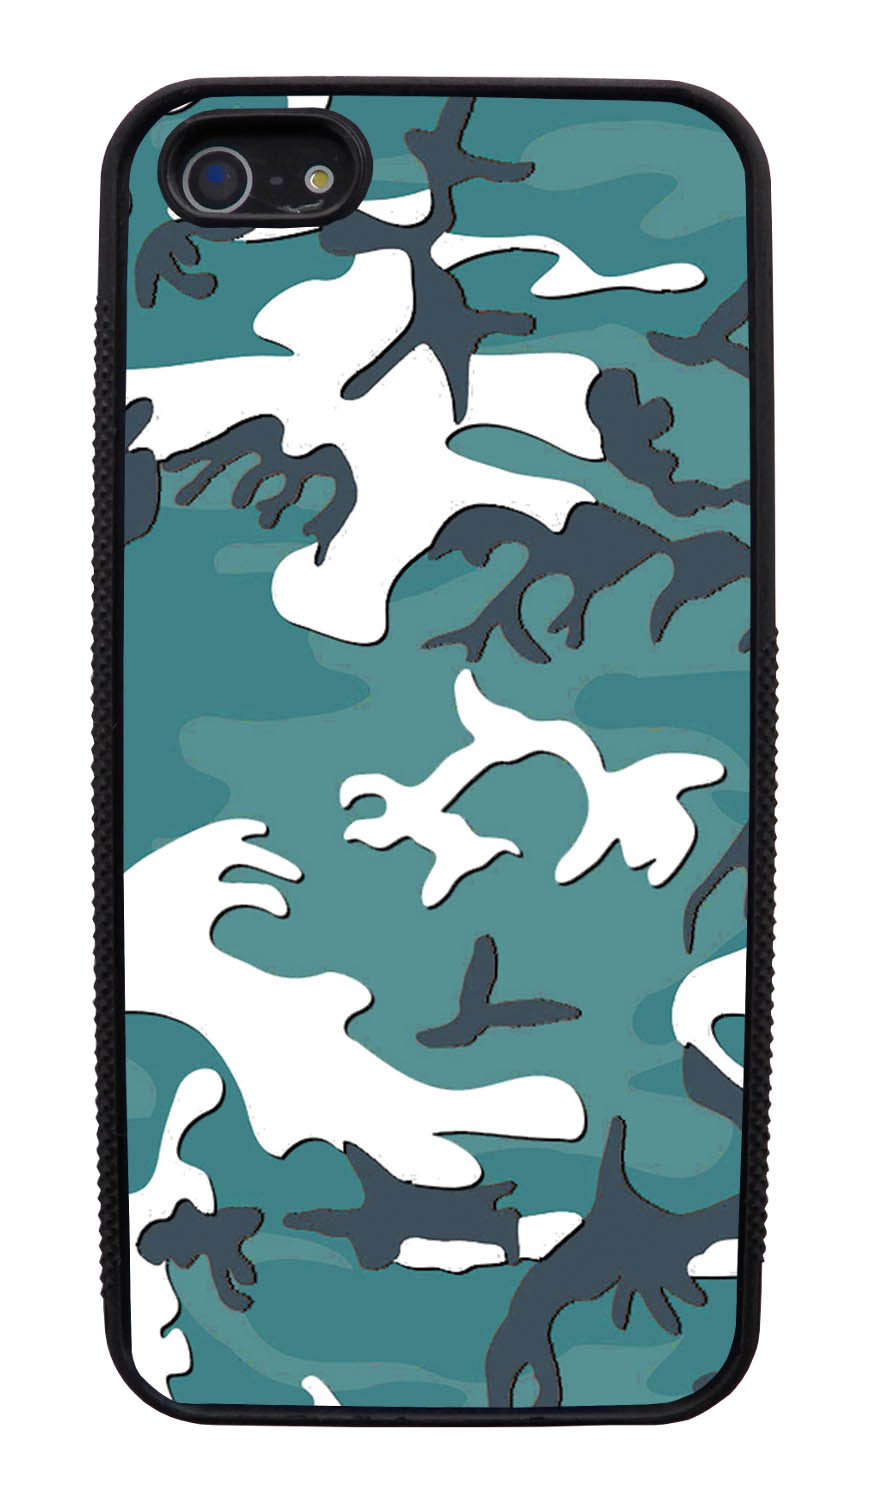 Apple iPhone 5 / 5S Camo Case - Oceanic Colors - Woodland - Black Slim Rubber Case